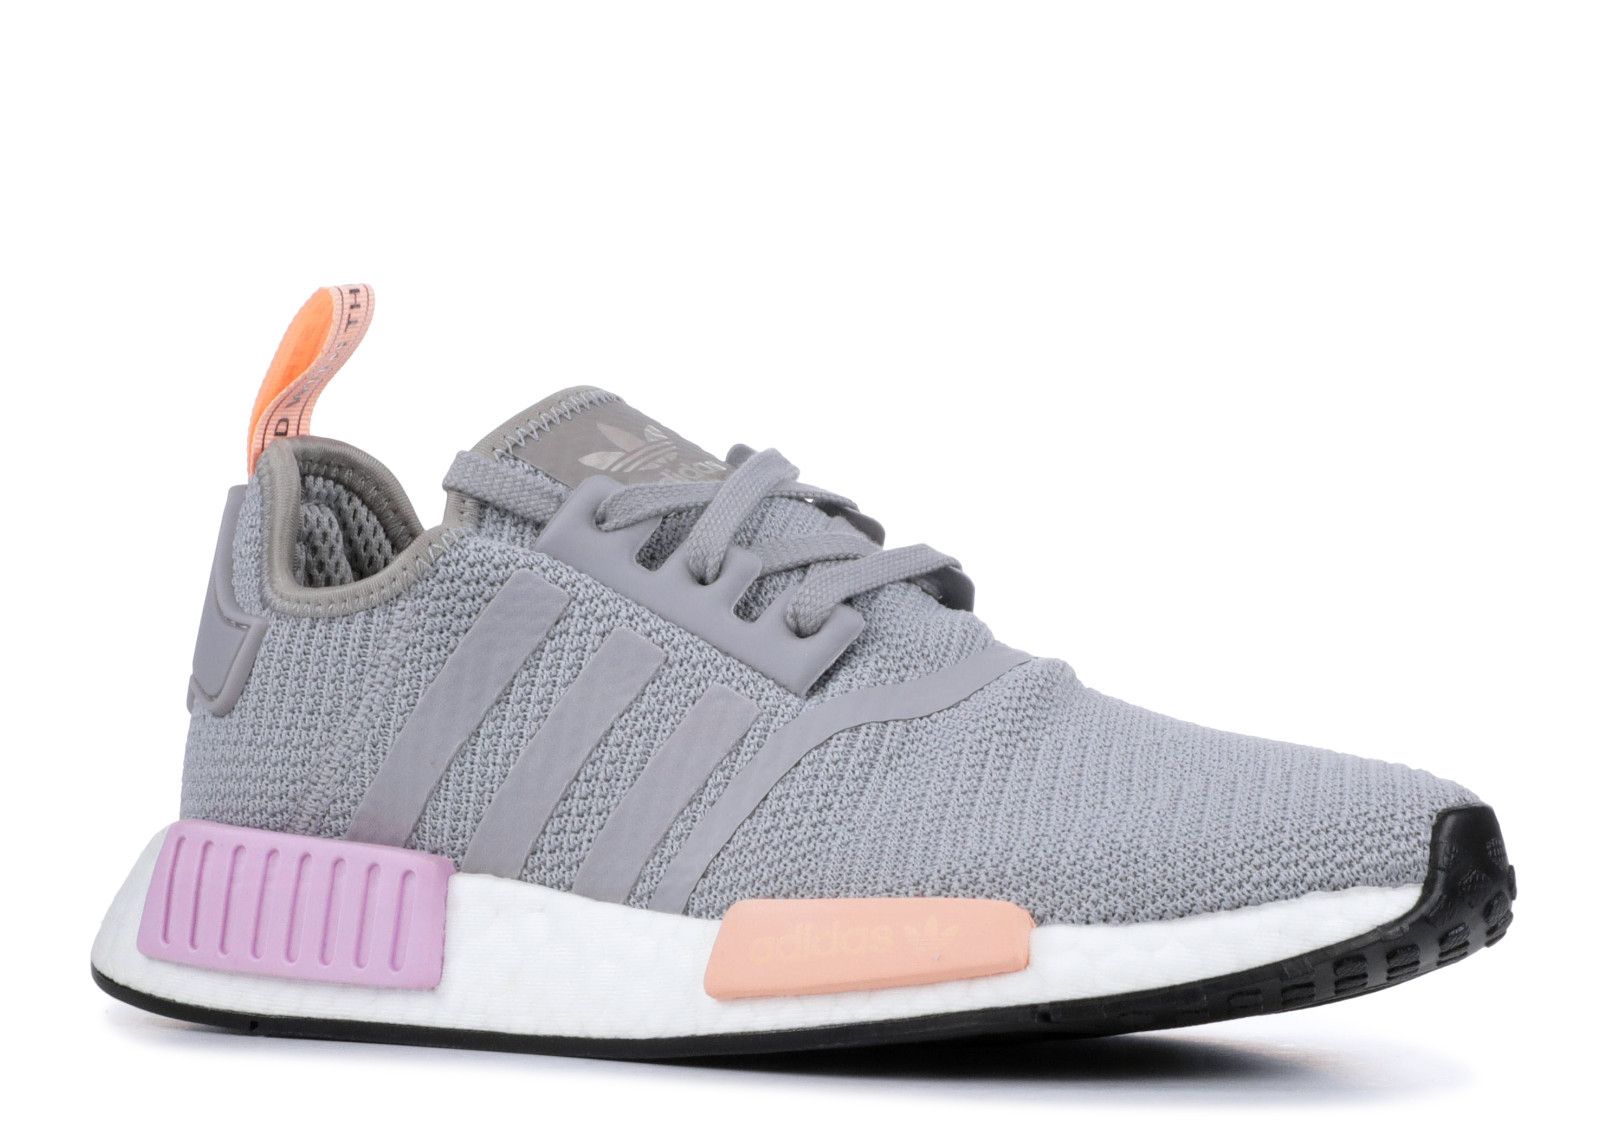 NMD R1 LIGHT GRANITE (W) image 2